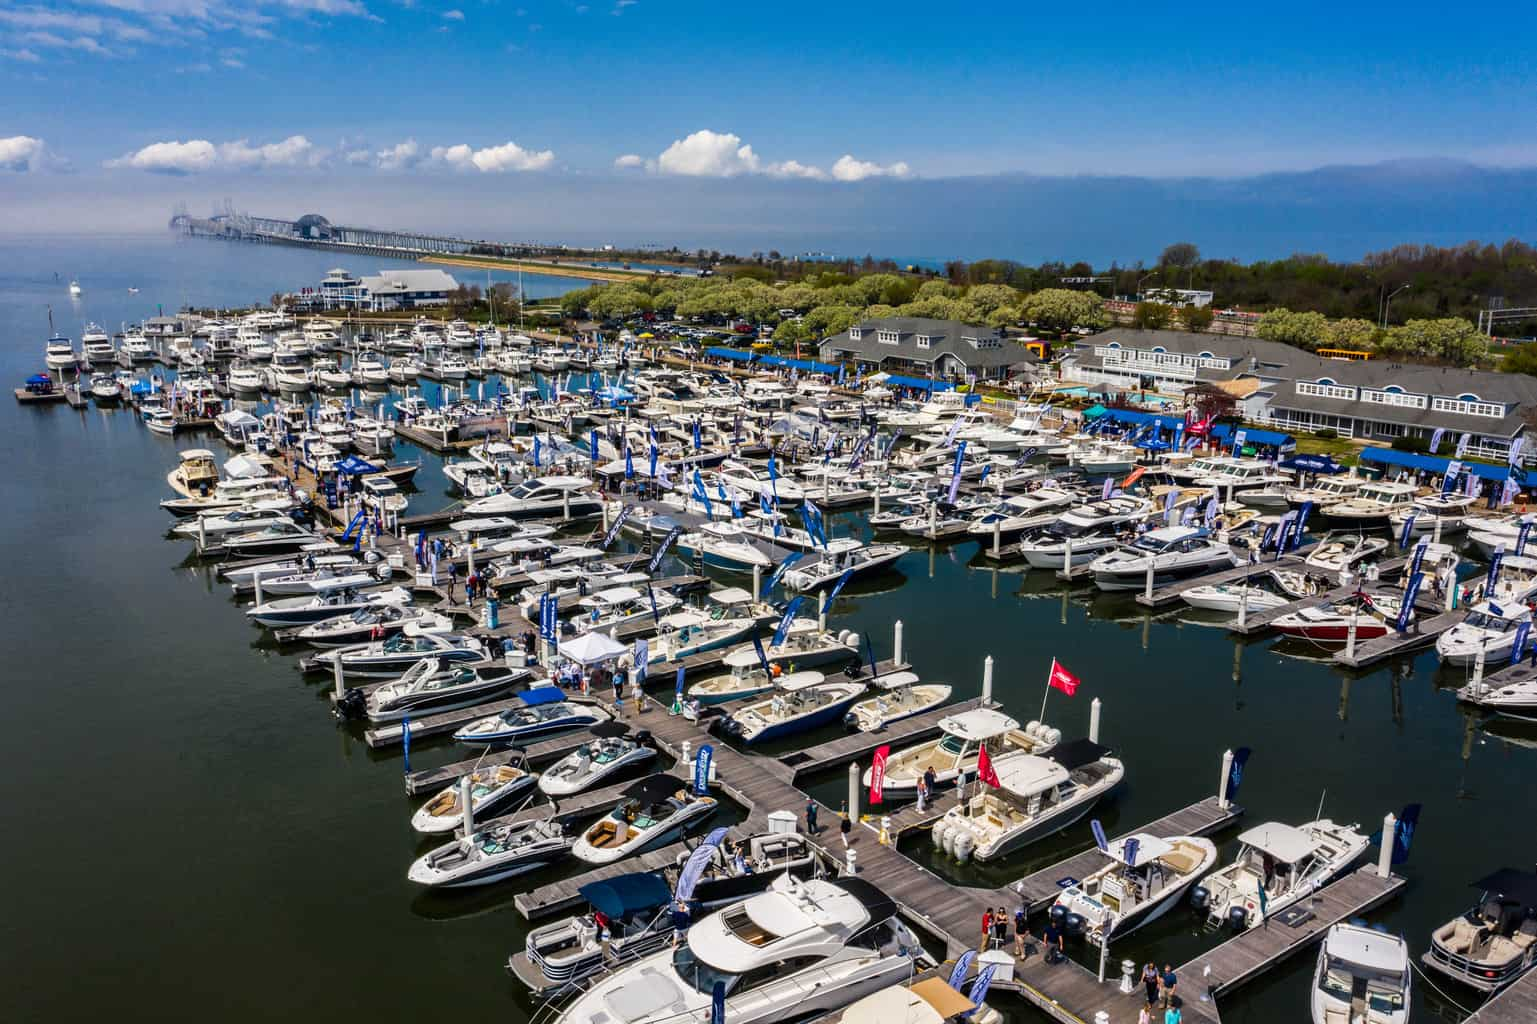 Largest Combined Spring Sail, Powerboat Show Kicks Off on Kent Island